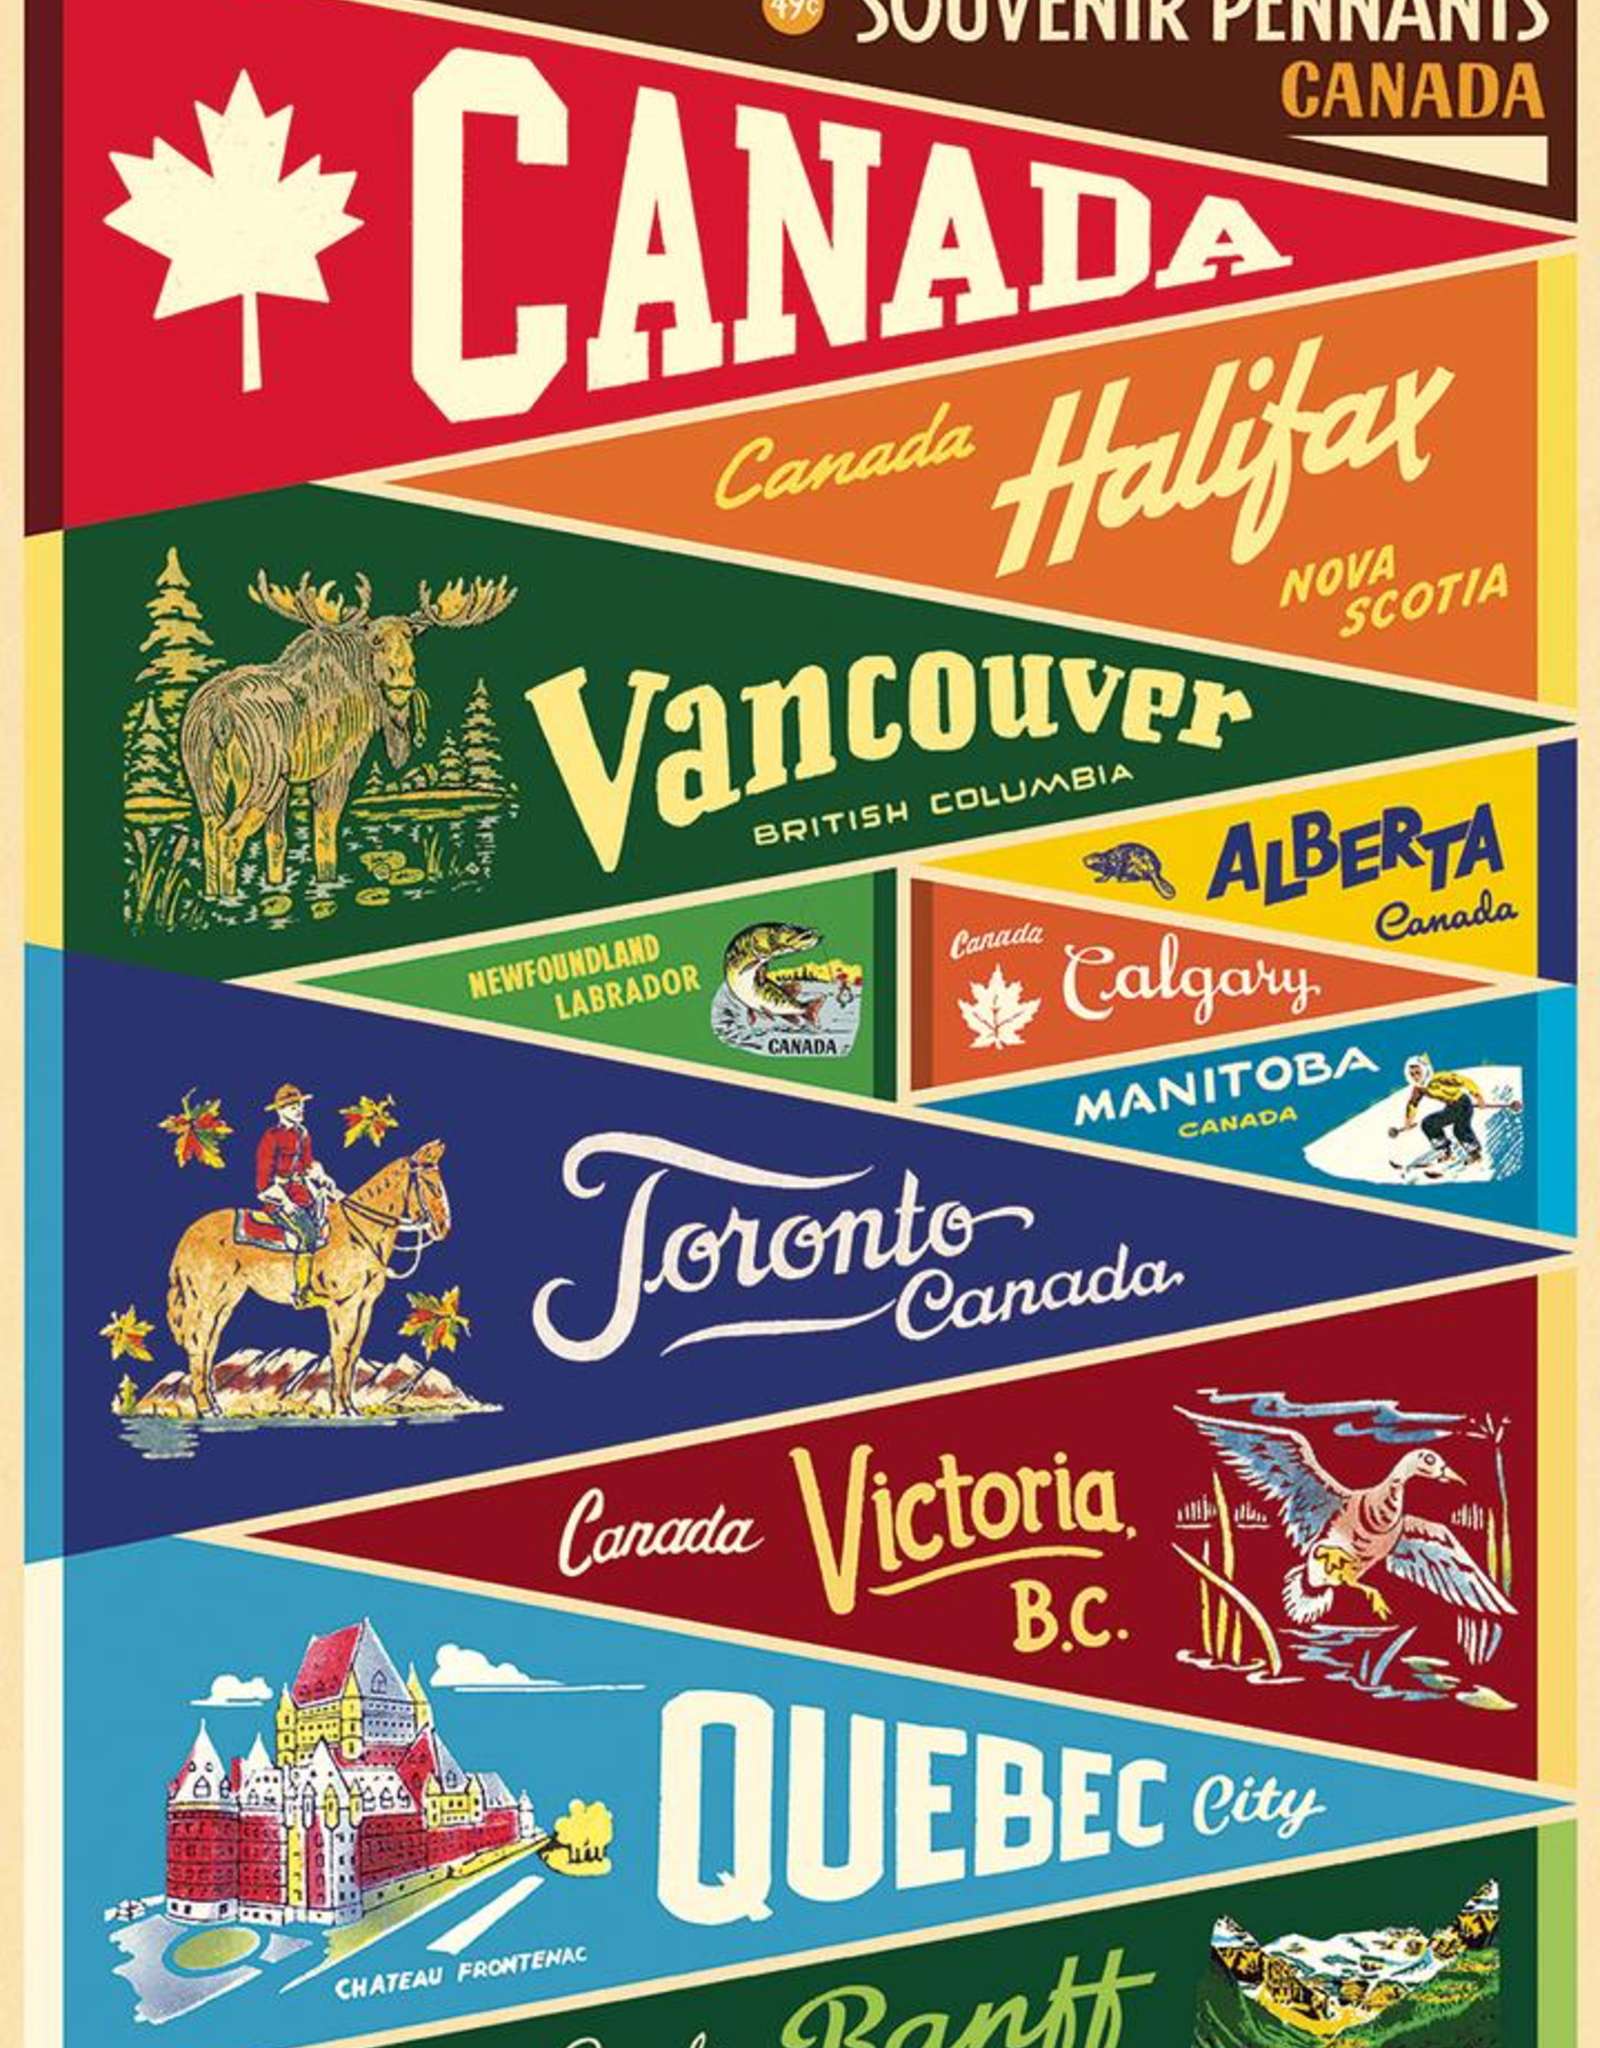 Cavallini Papers Cavallini Papers Canada Pennants Wrap